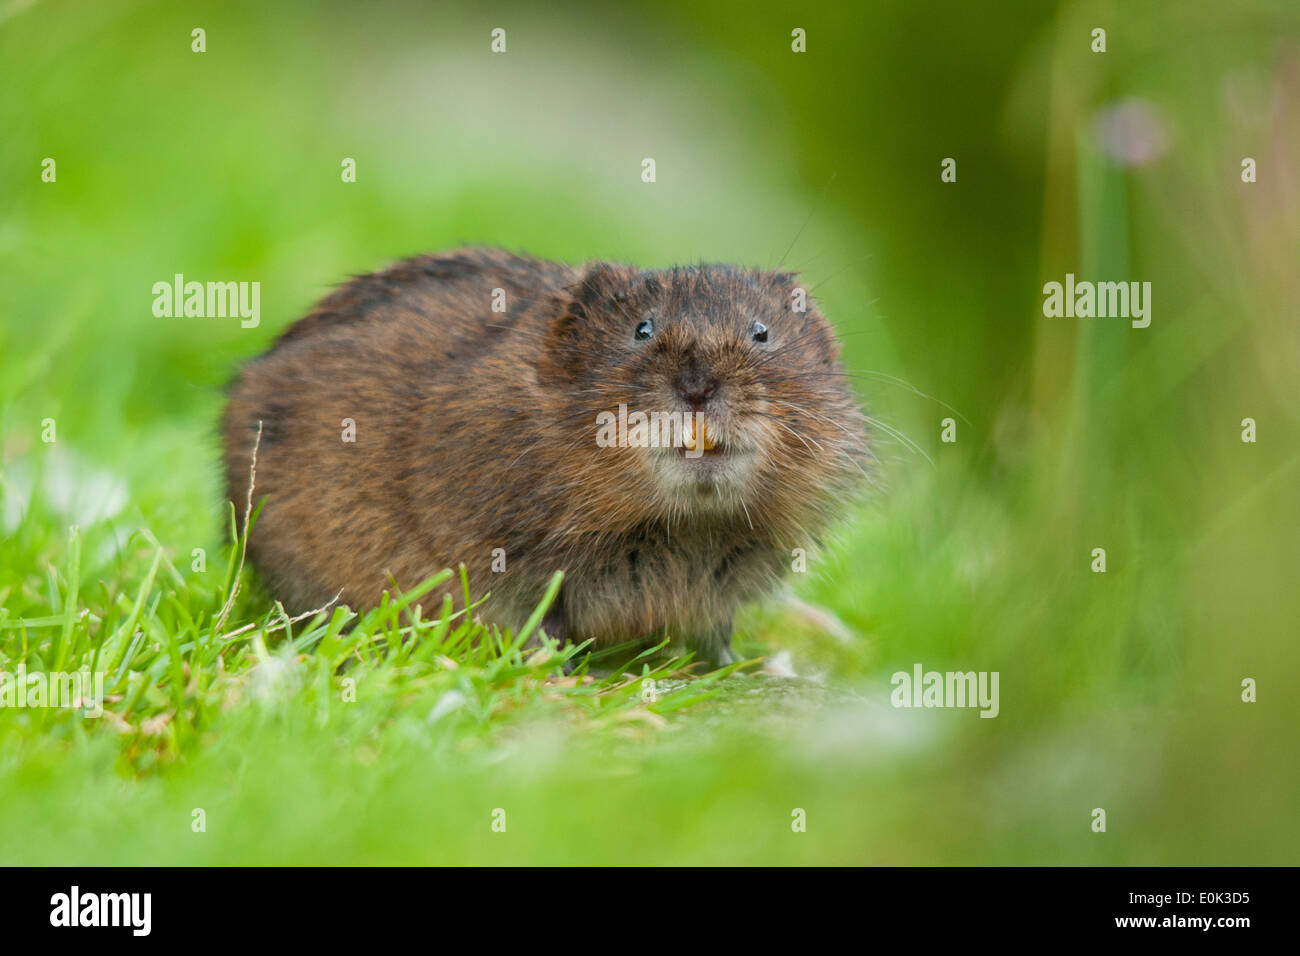 Water vole showing teeth, Cromford Canal, Derbyshire. (Arvicola amphibius) - Stock Image